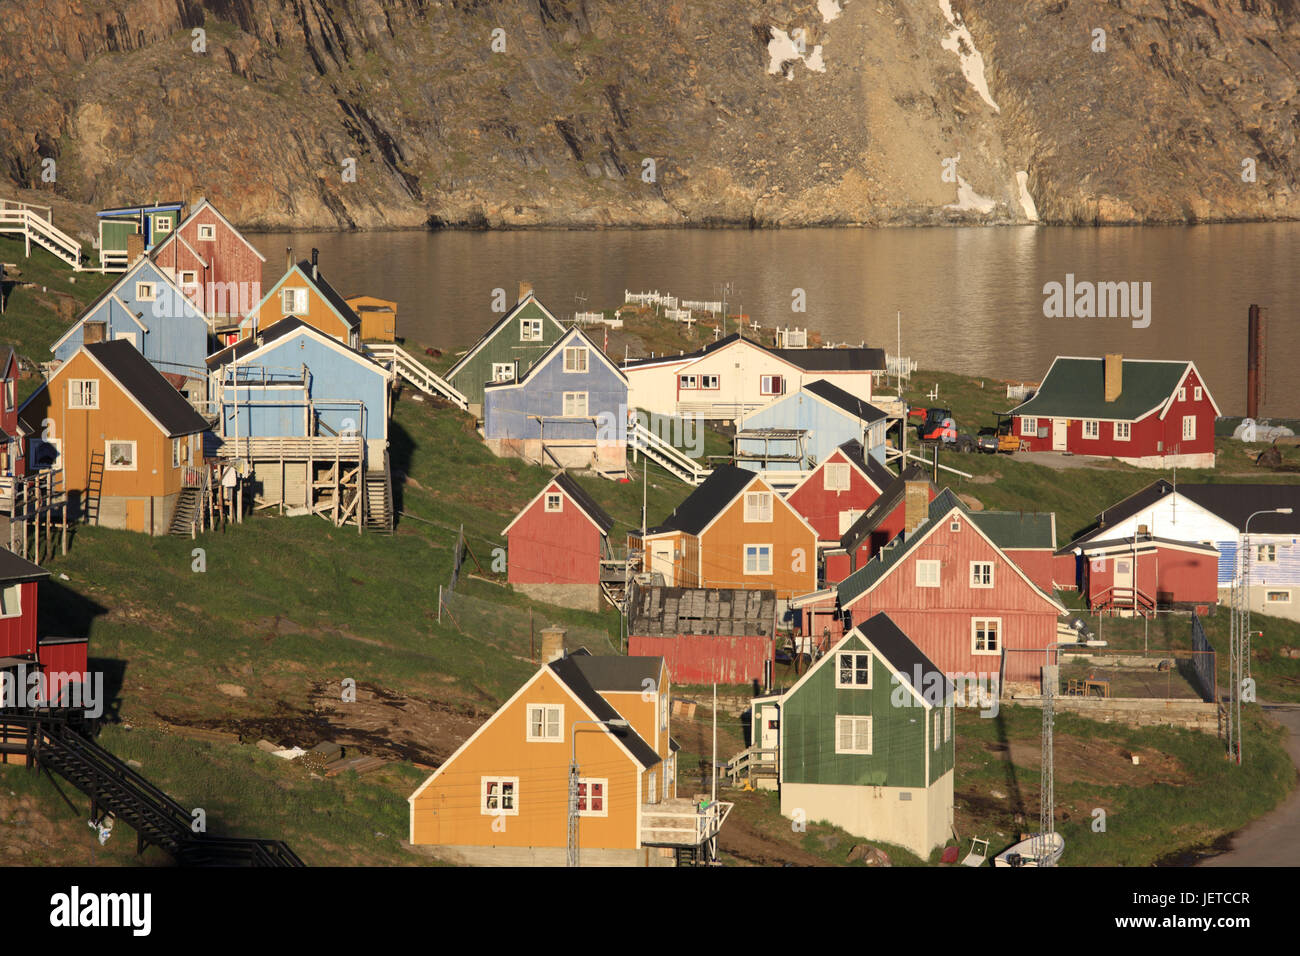 Greenland, Upernavik, town view, residential houses, North-Western Greenland, coast, town, the Arctic, houses, timber - Stock Image